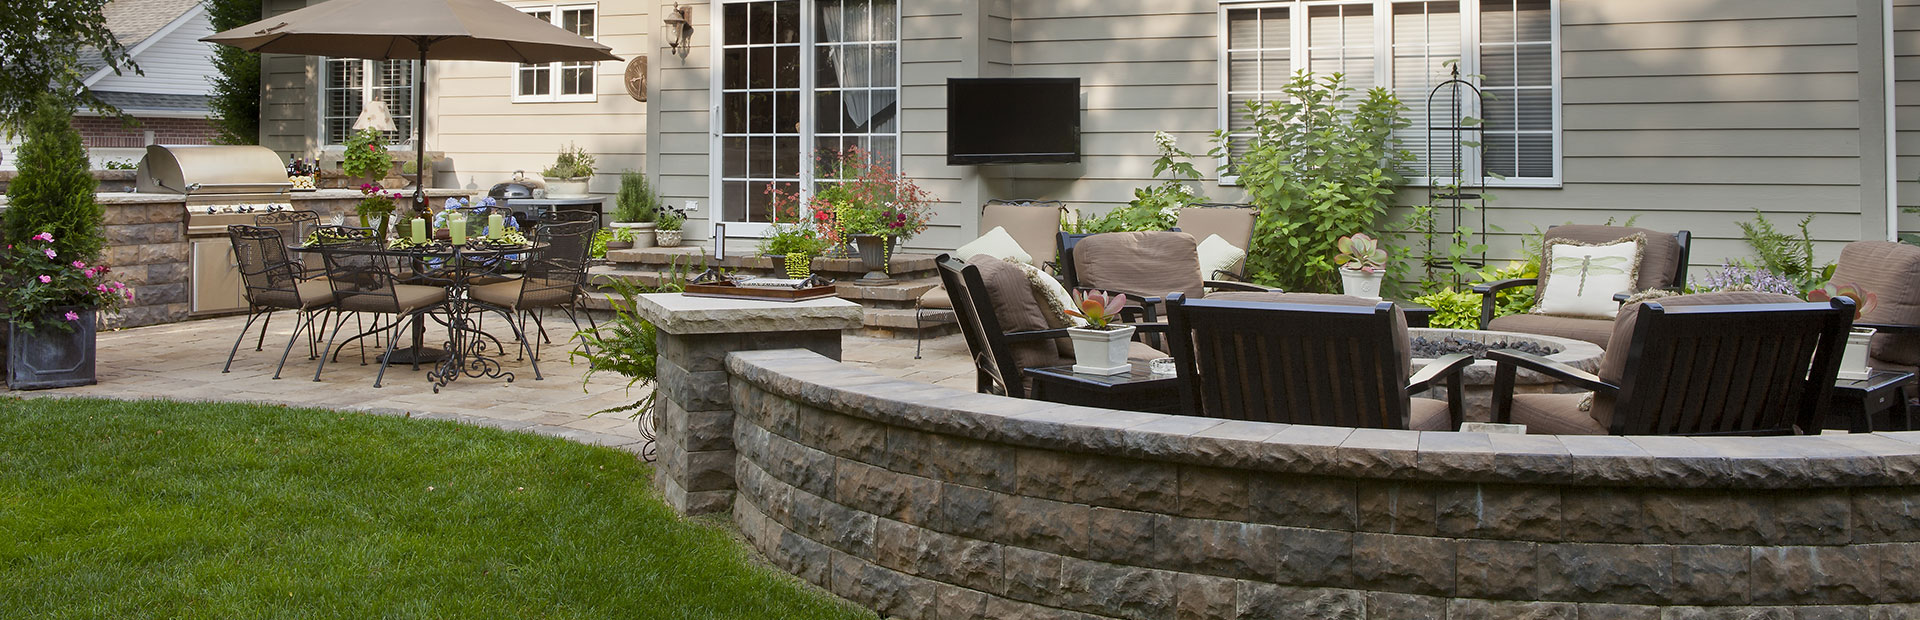 http://derstinelandscaping.com/wp-content/uploads/2019/08/patio-wall-hardscaping-slider.jpg